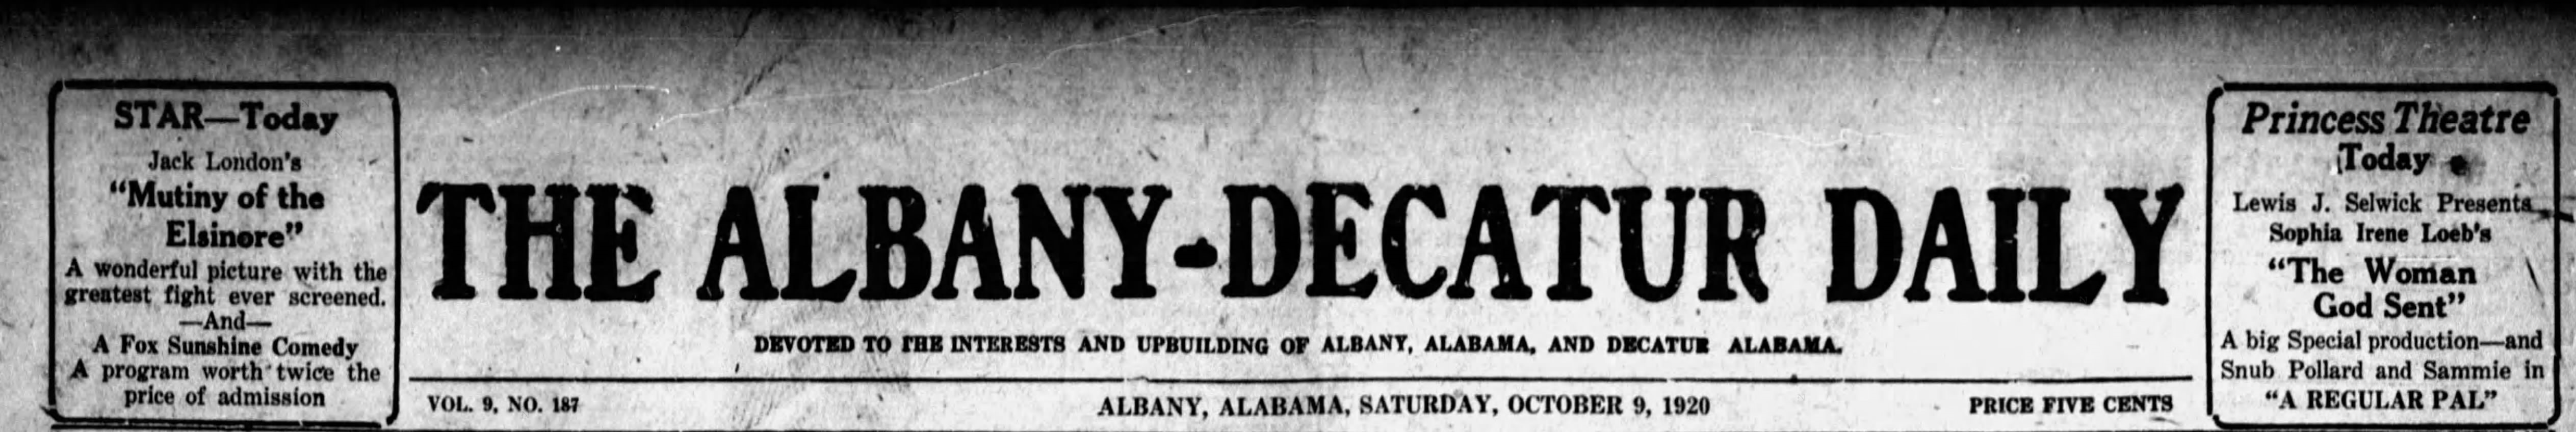 Patron - Citizens from Albany, Alabama were flocking to the Fair in Birmingham in 1920